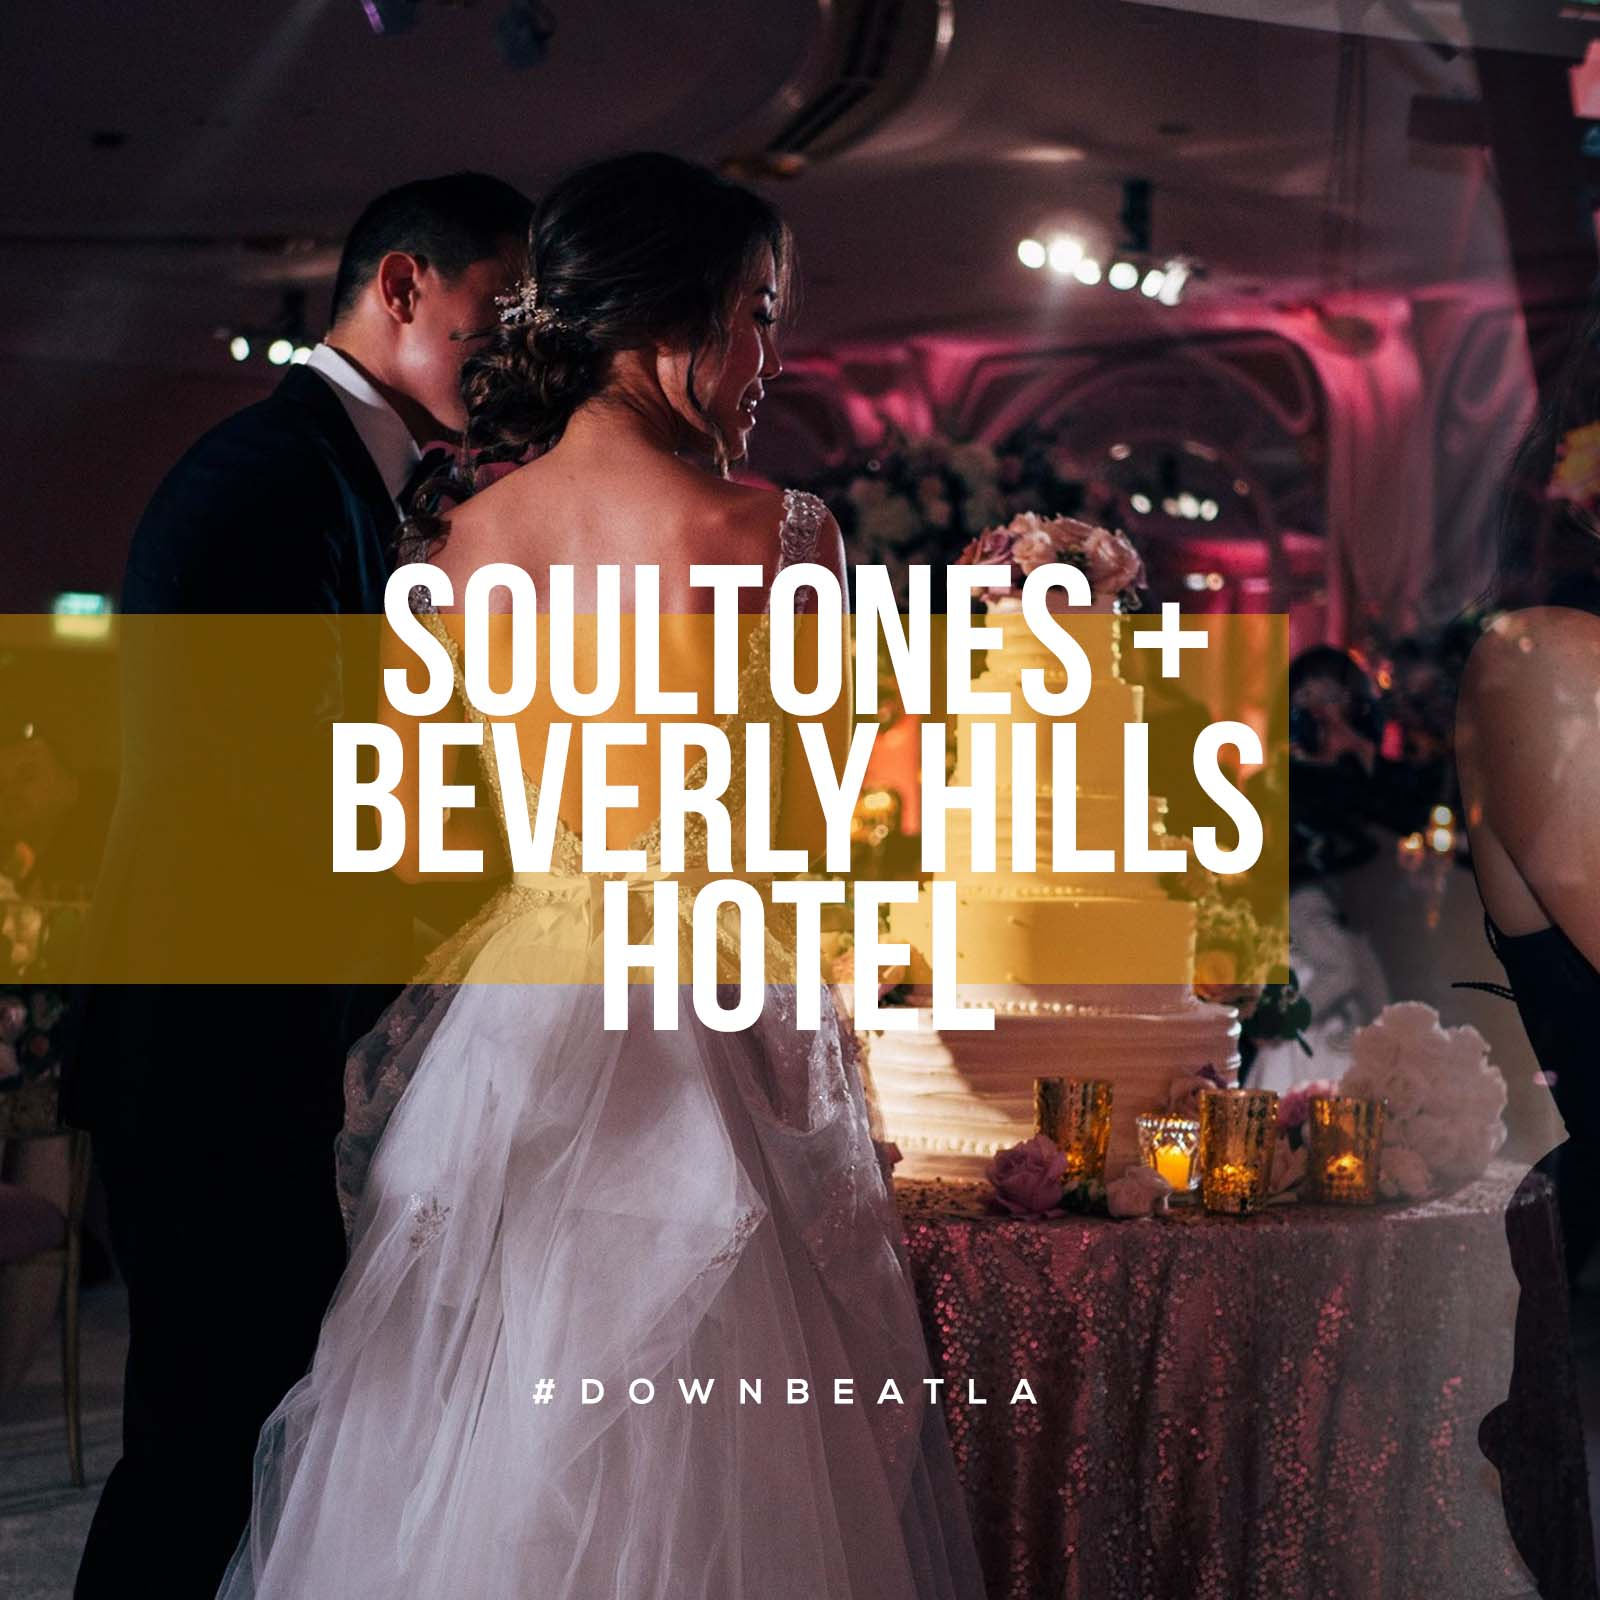 Soultones+Beverly Hills-3 copy.jpg